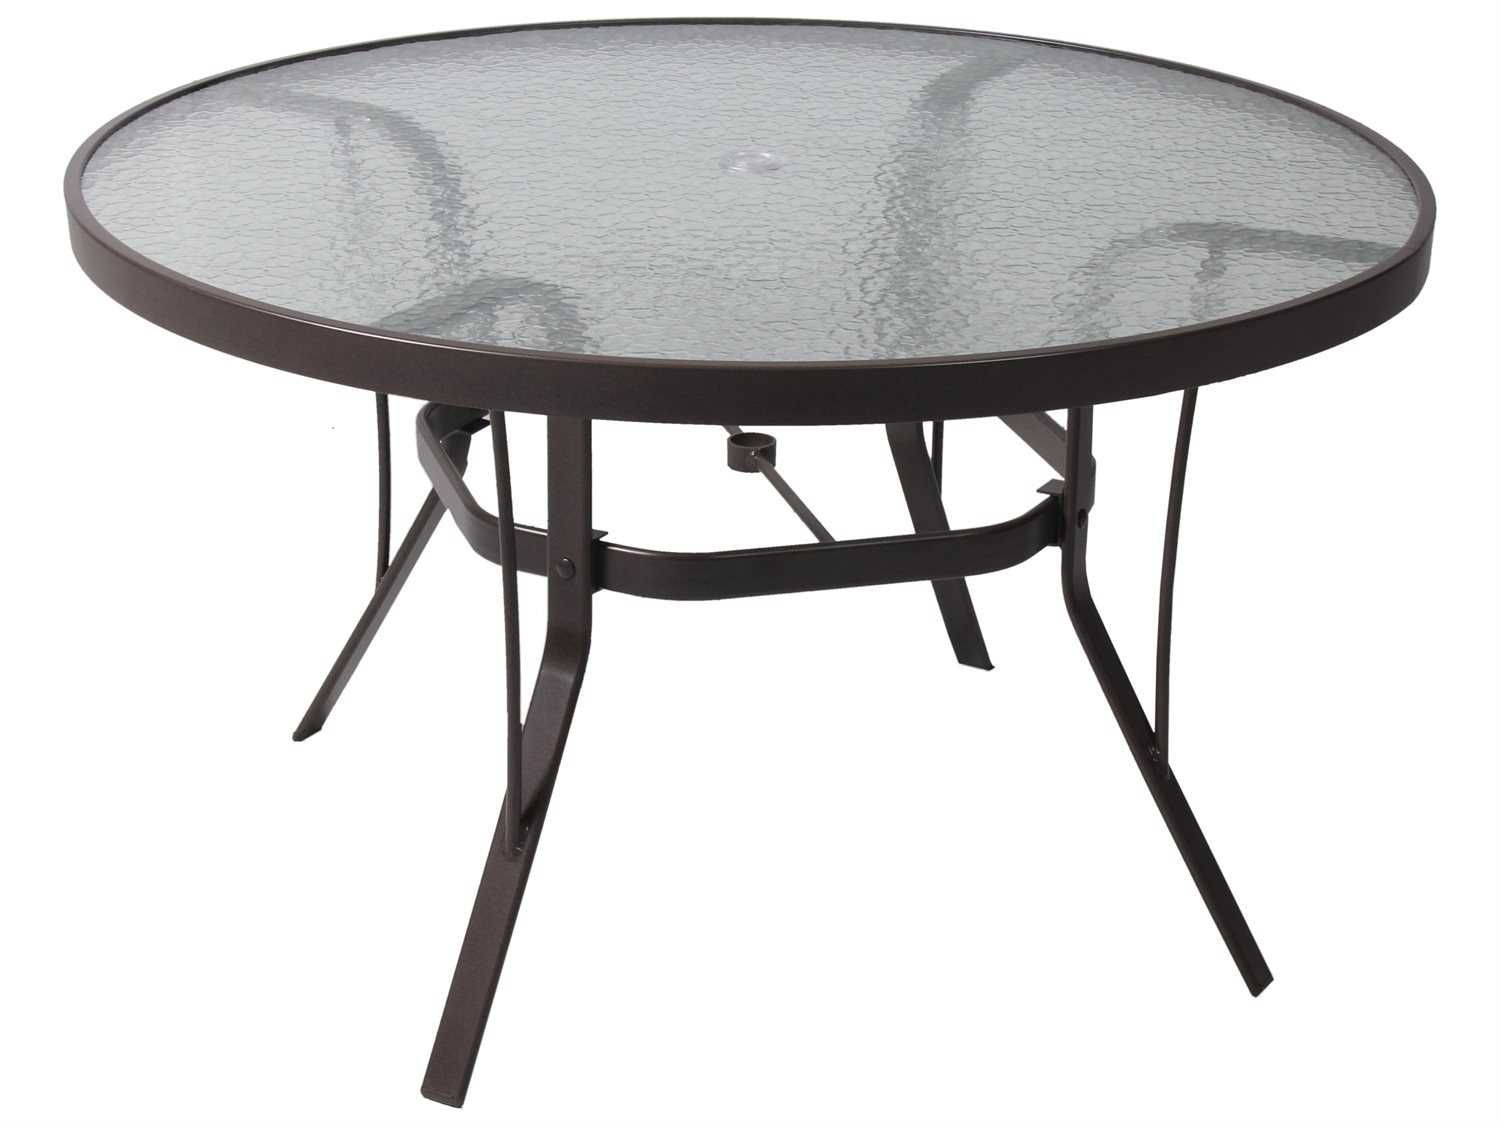 Round Glass Top Patio Table Doces Abobrinhas Pinterest - 36 round outdoor dining table